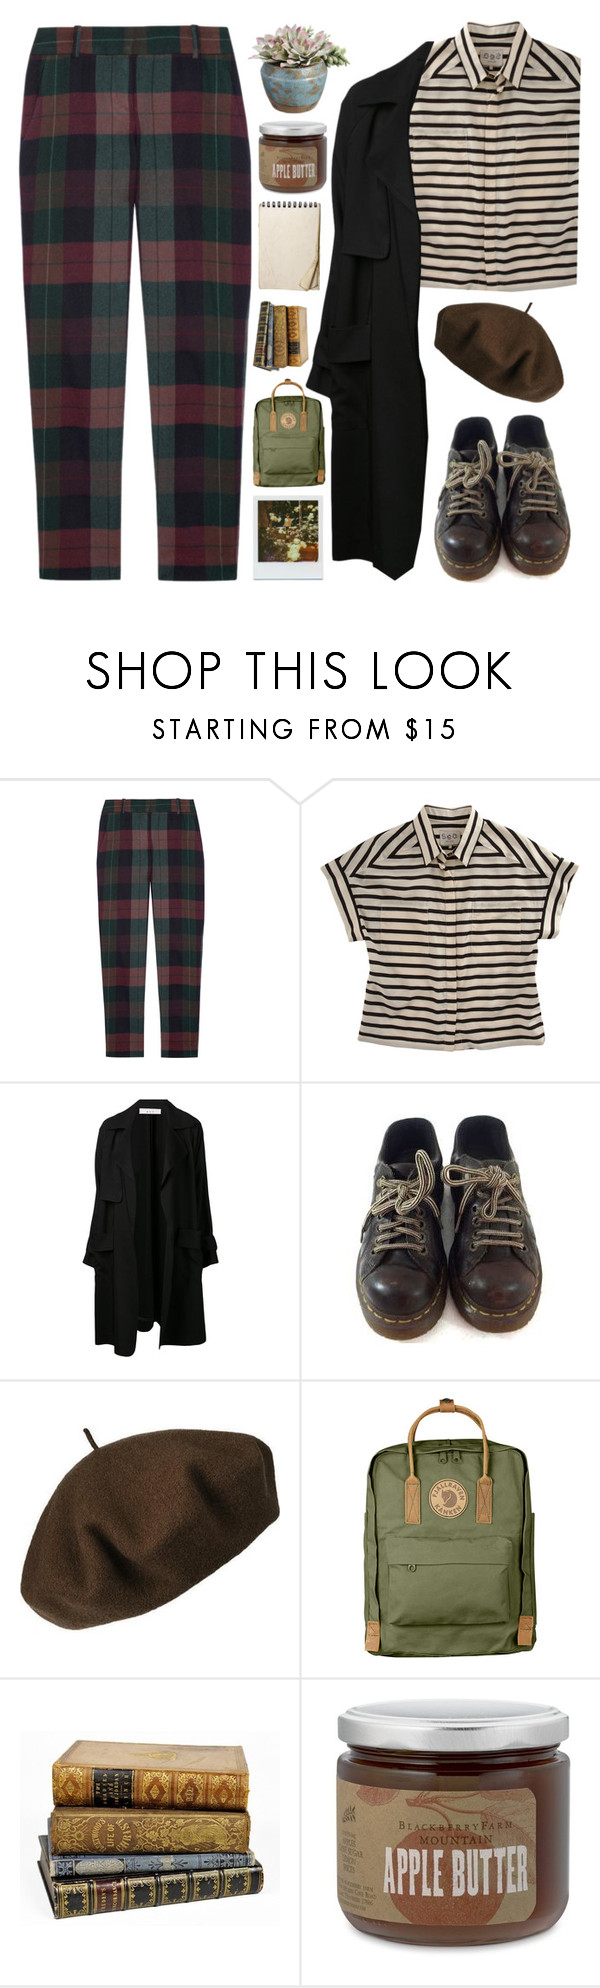 """It's My Birthday!"" by wi-fi-li-fe ❤ liked on Polyvore featuring Theory, Sea, New York, A.L.C., Dr. Martens, Betmar and Fjällräven"